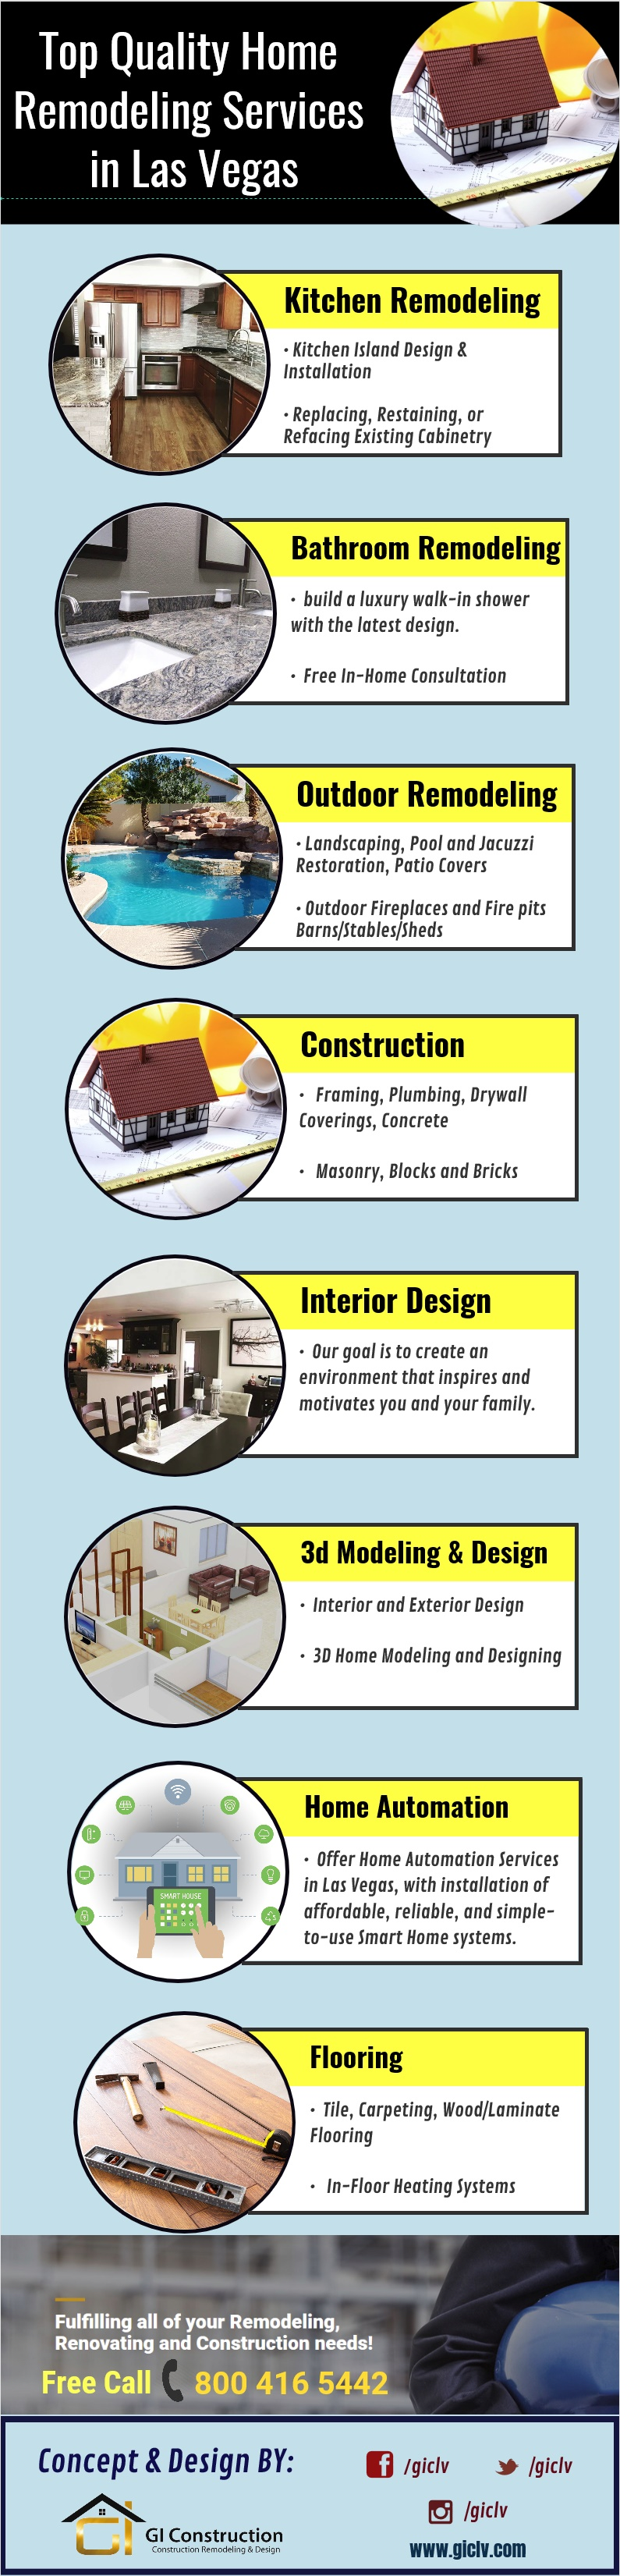 Looking for a top quality home remodeling services in Las Vegas? GI Construction is providing you best remodeling, renovation and construction services in Las Vegas. Our expert team will help you to solve all kinds of issues. Feel free to visit our website http://www.giclv.com/services/home-remodeling/ and call us on 800 416 5442.